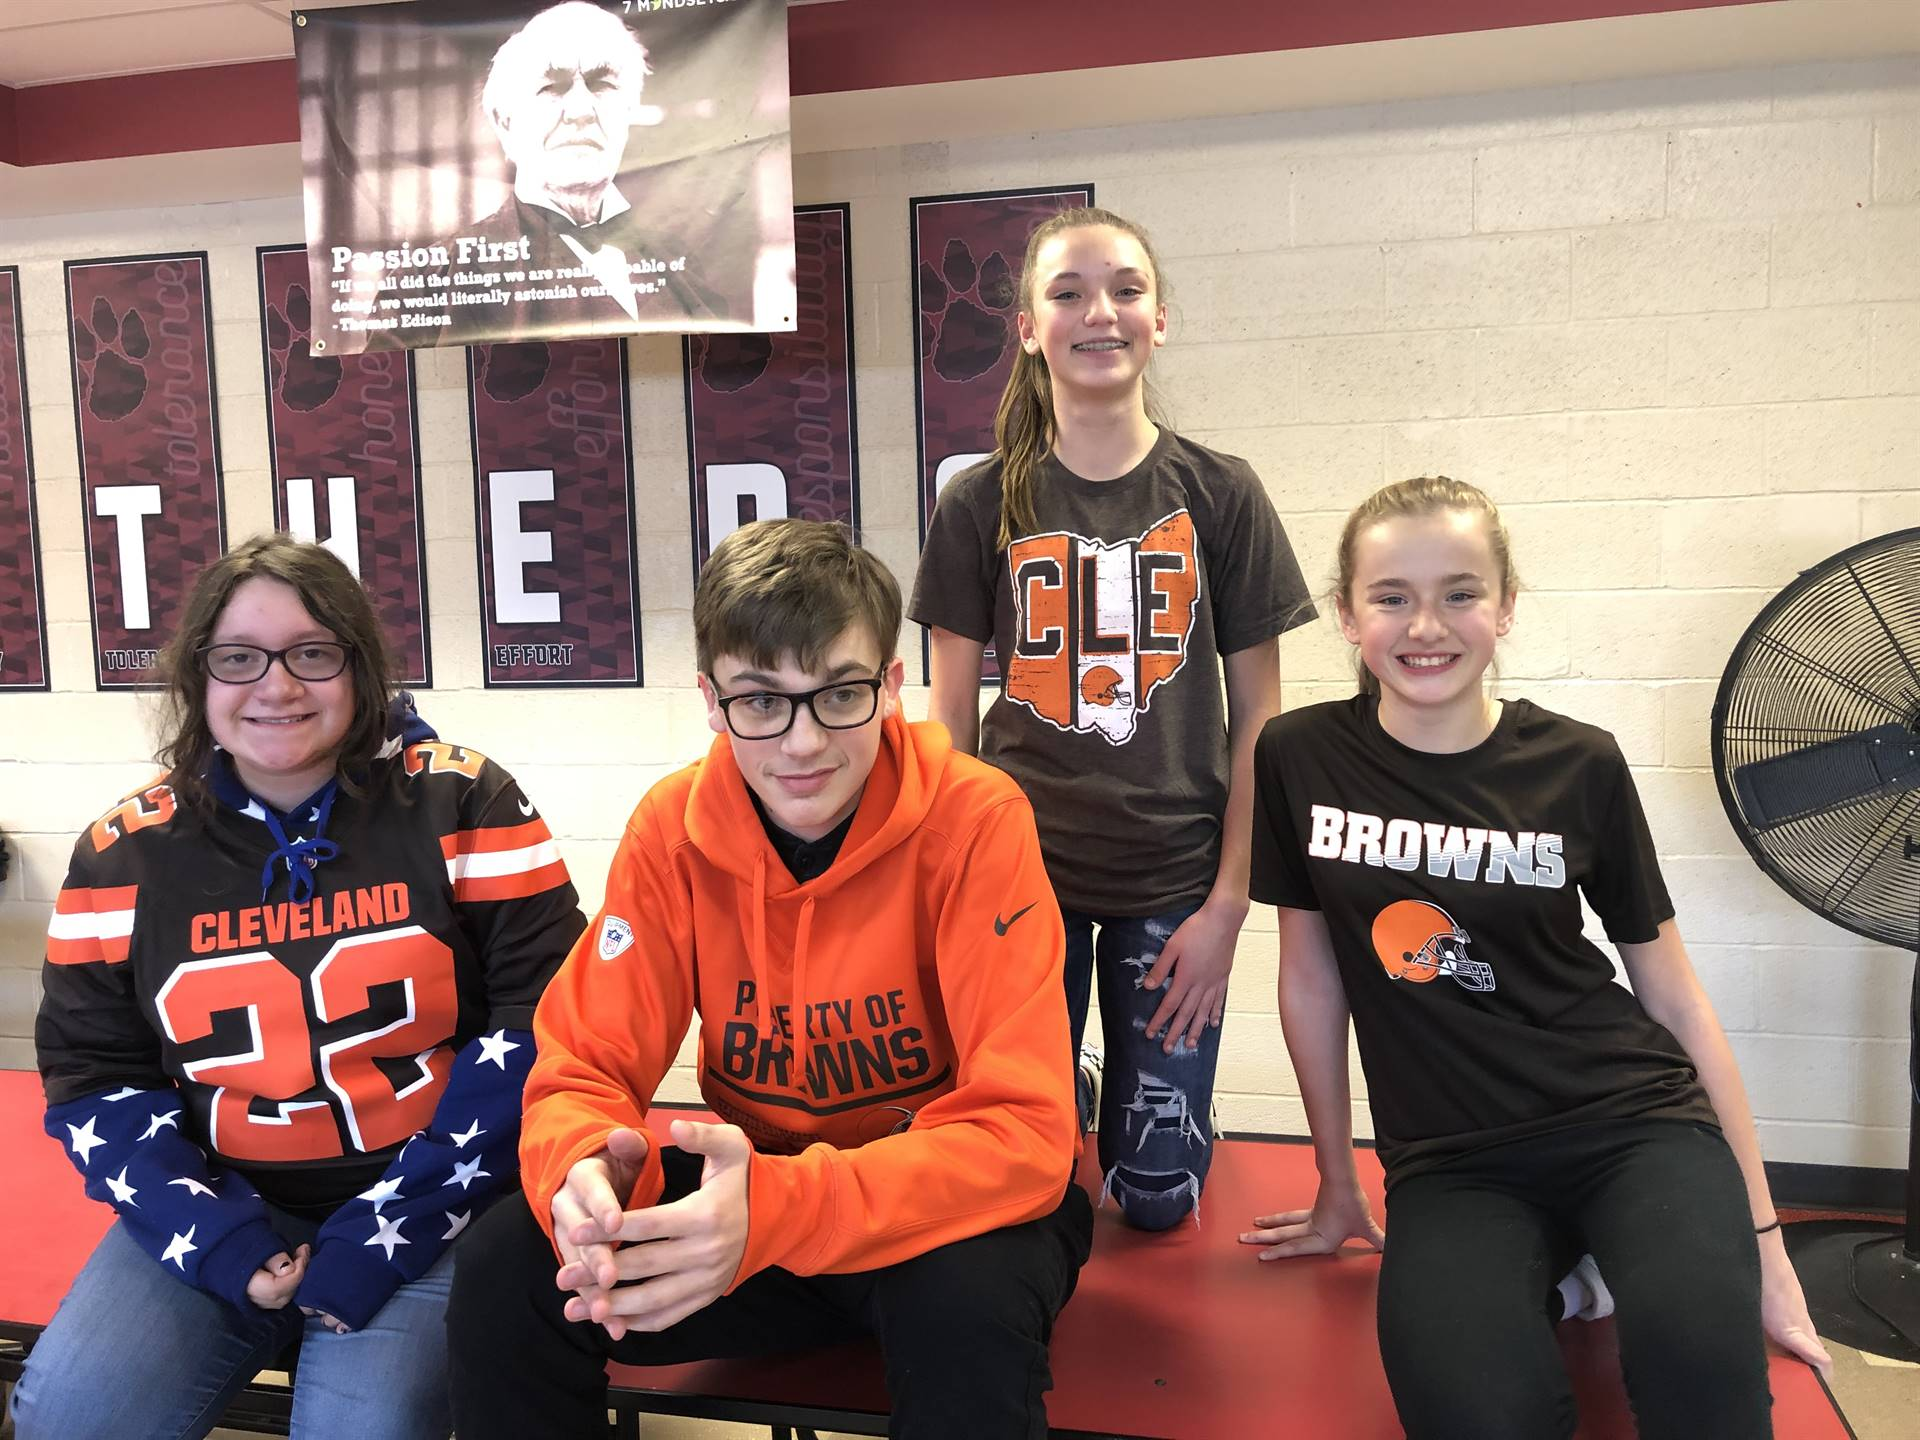 8th grader Browns Backers!